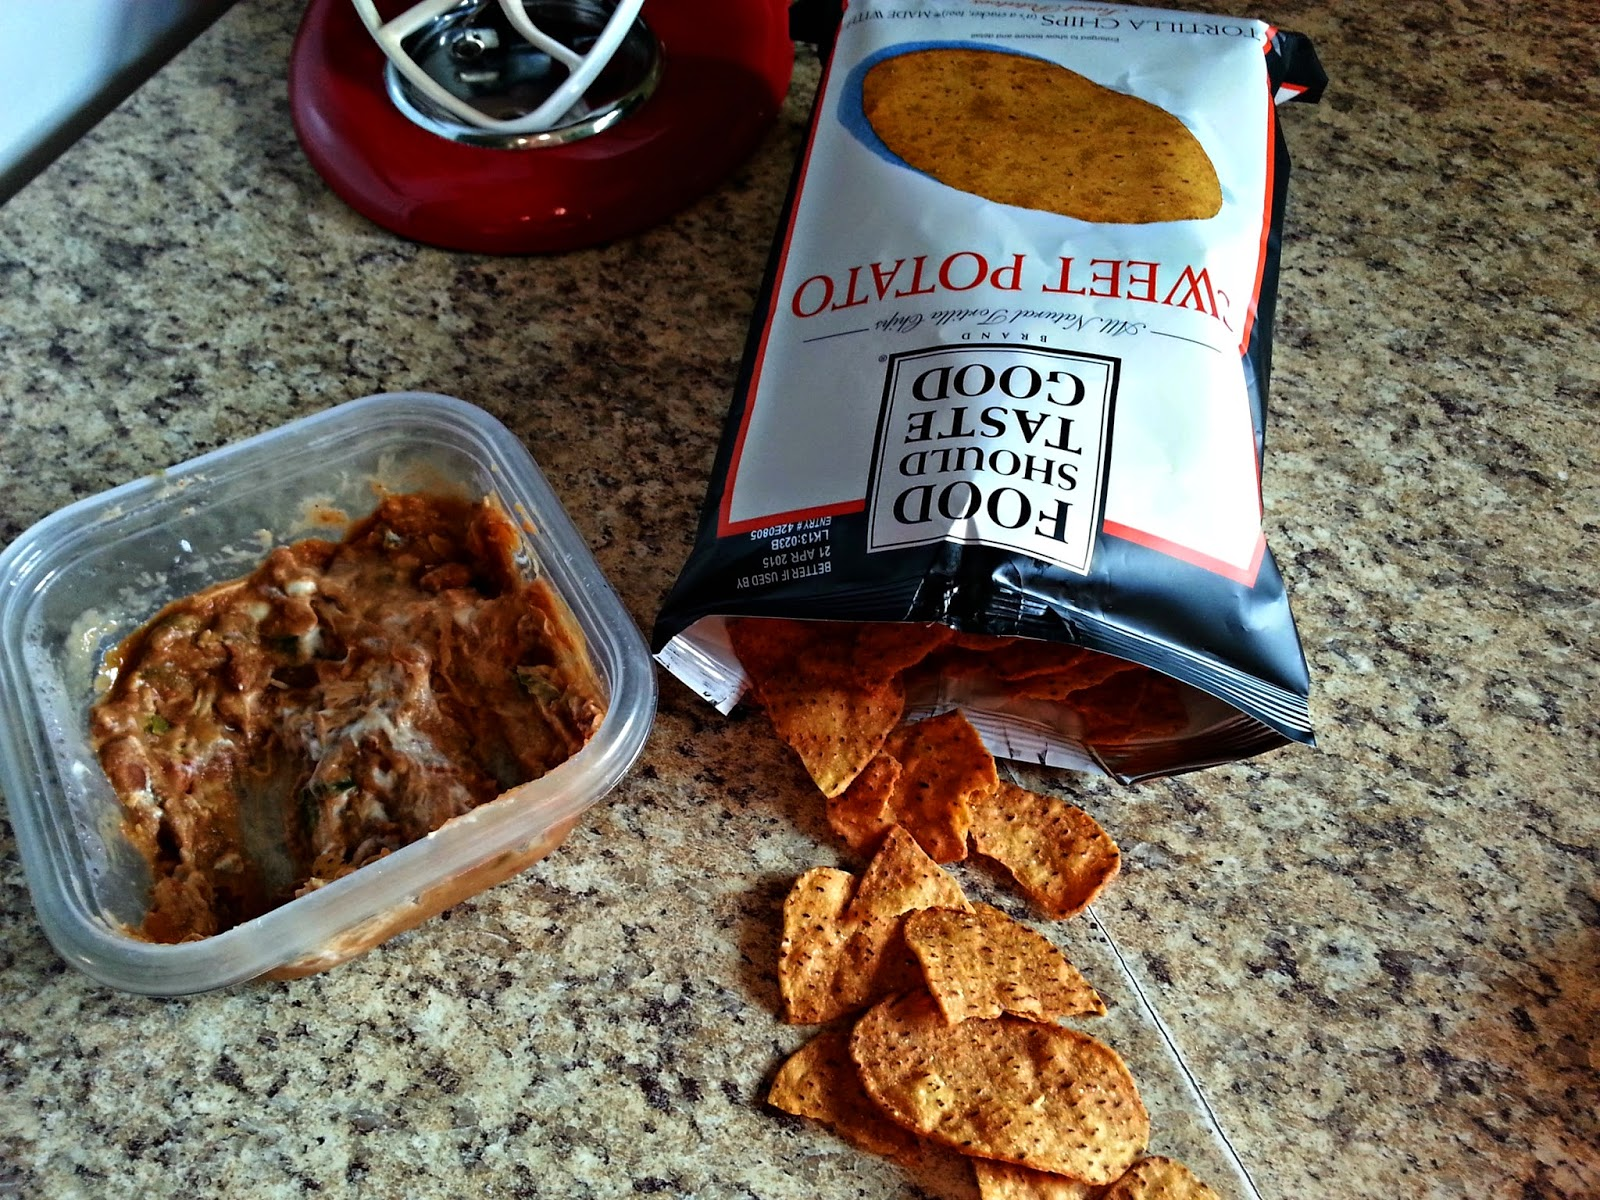 Family Meals on a Budget: Week 3 Sweet Potato Chips